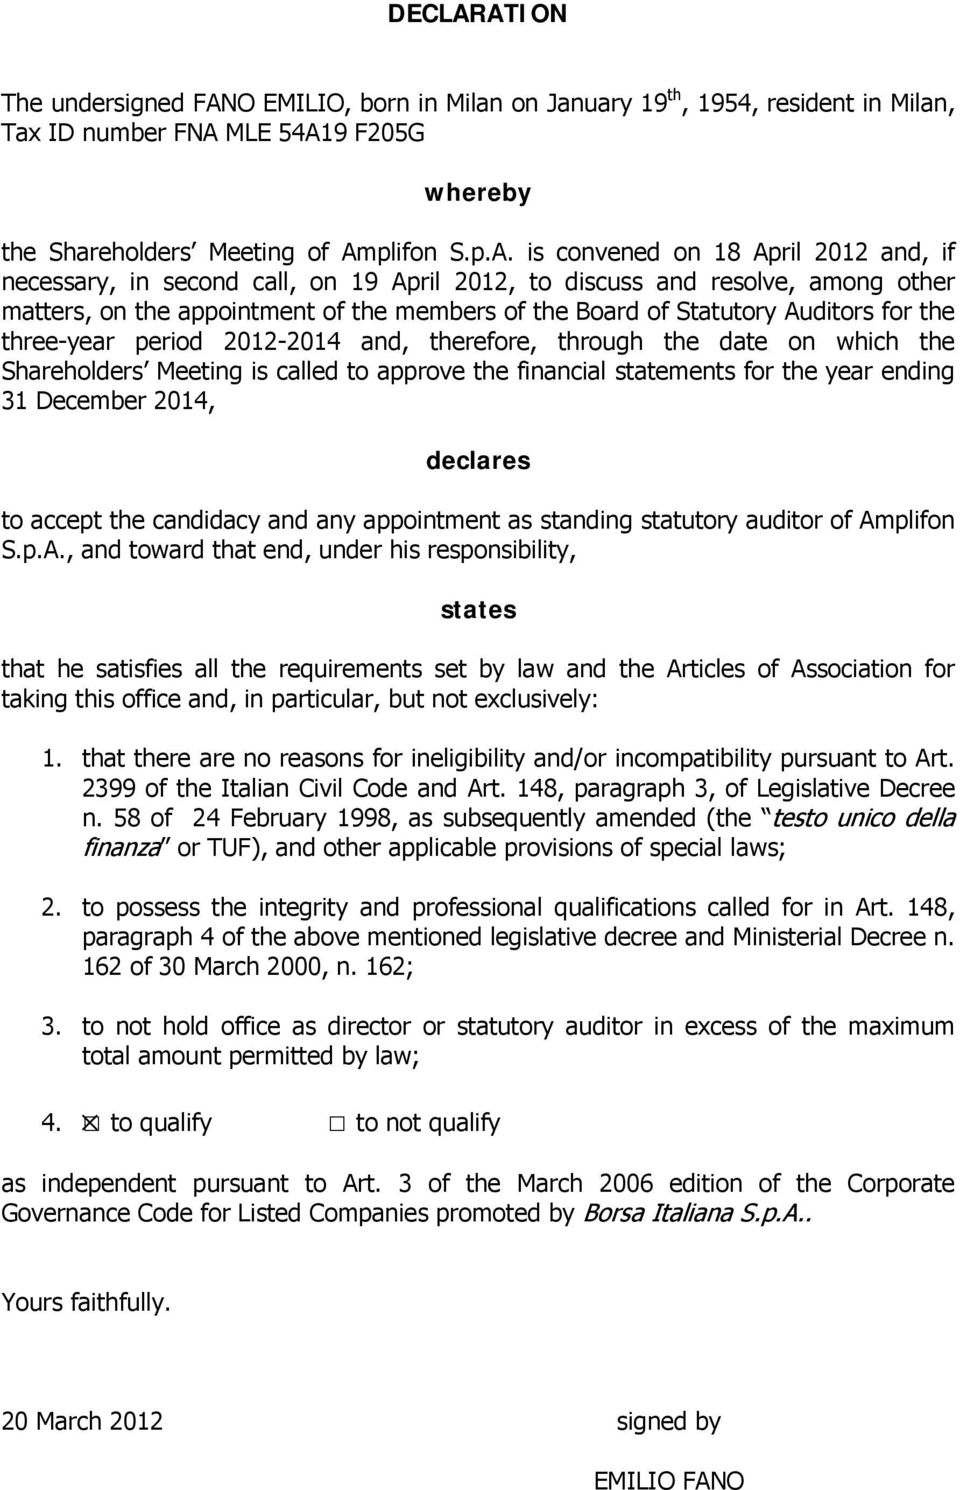 April 2012 and, if necessary, in second call, on 19 April 2012, to discuss and resolve, among other matters, on the appointment of the members of the Board of Statutory Auditors for the three-year